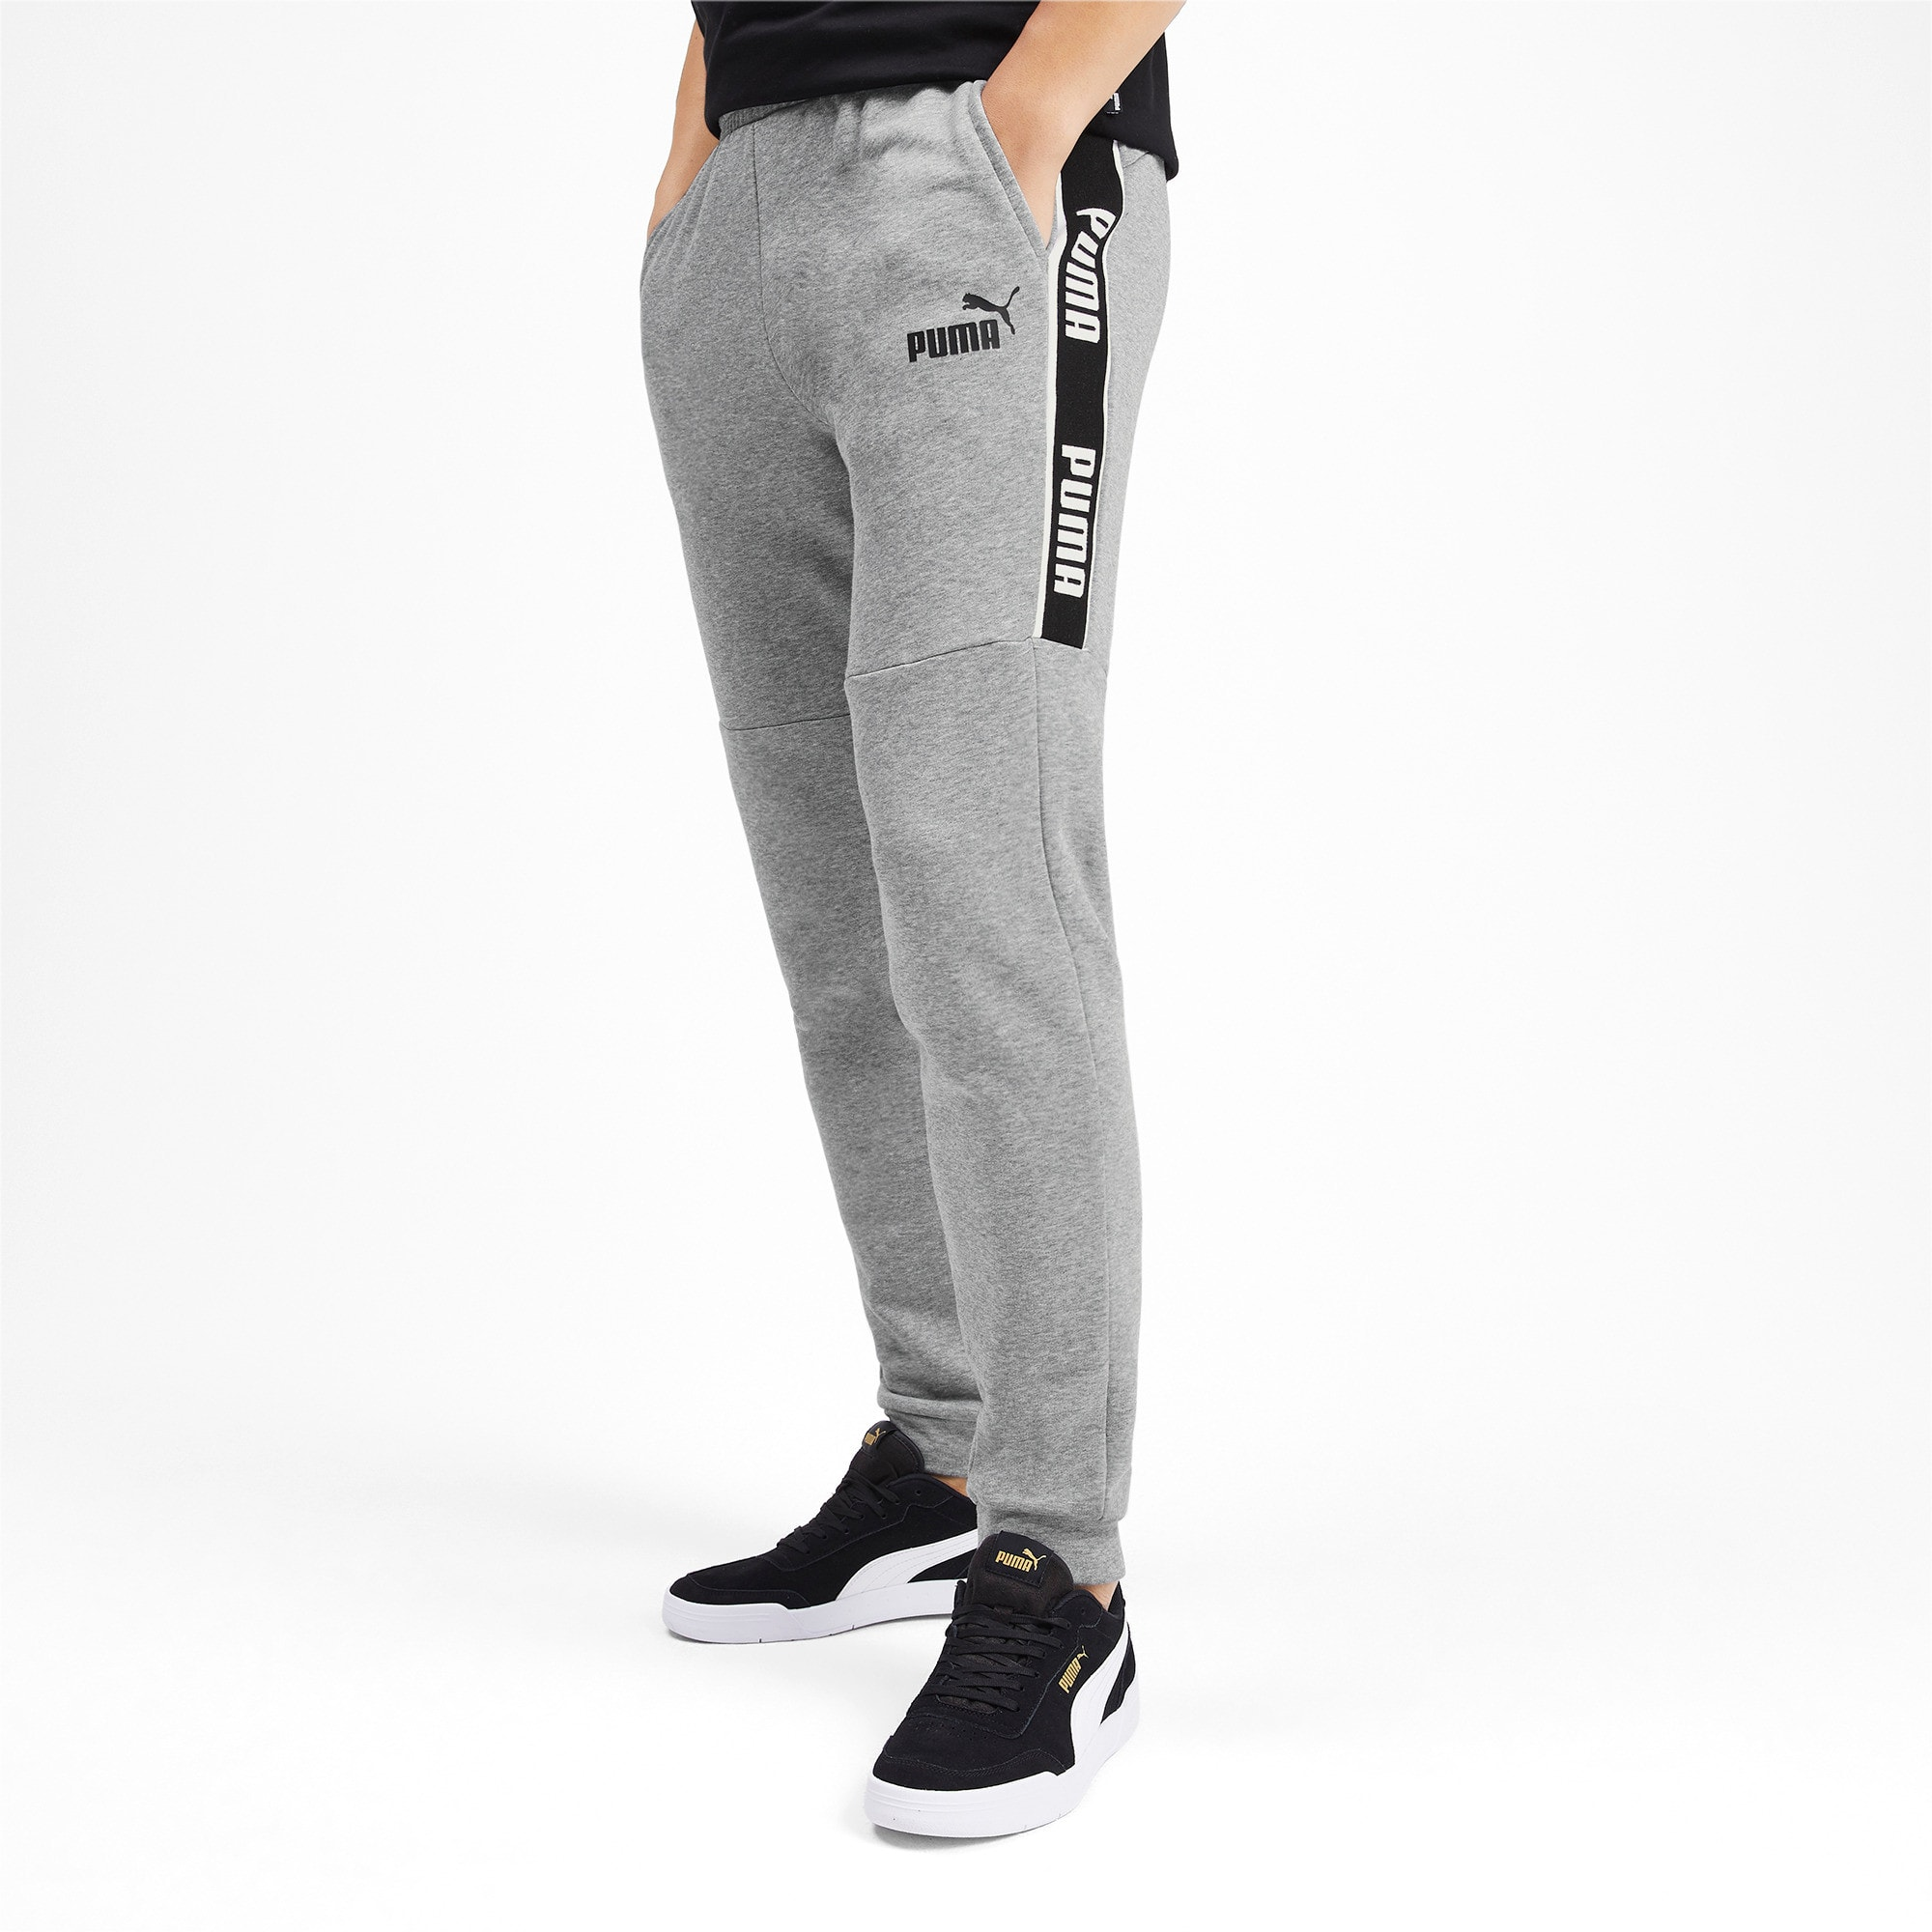 Thumbnail 1 of Amplified Herren Sweatpants, Medium Gray Heather, medium